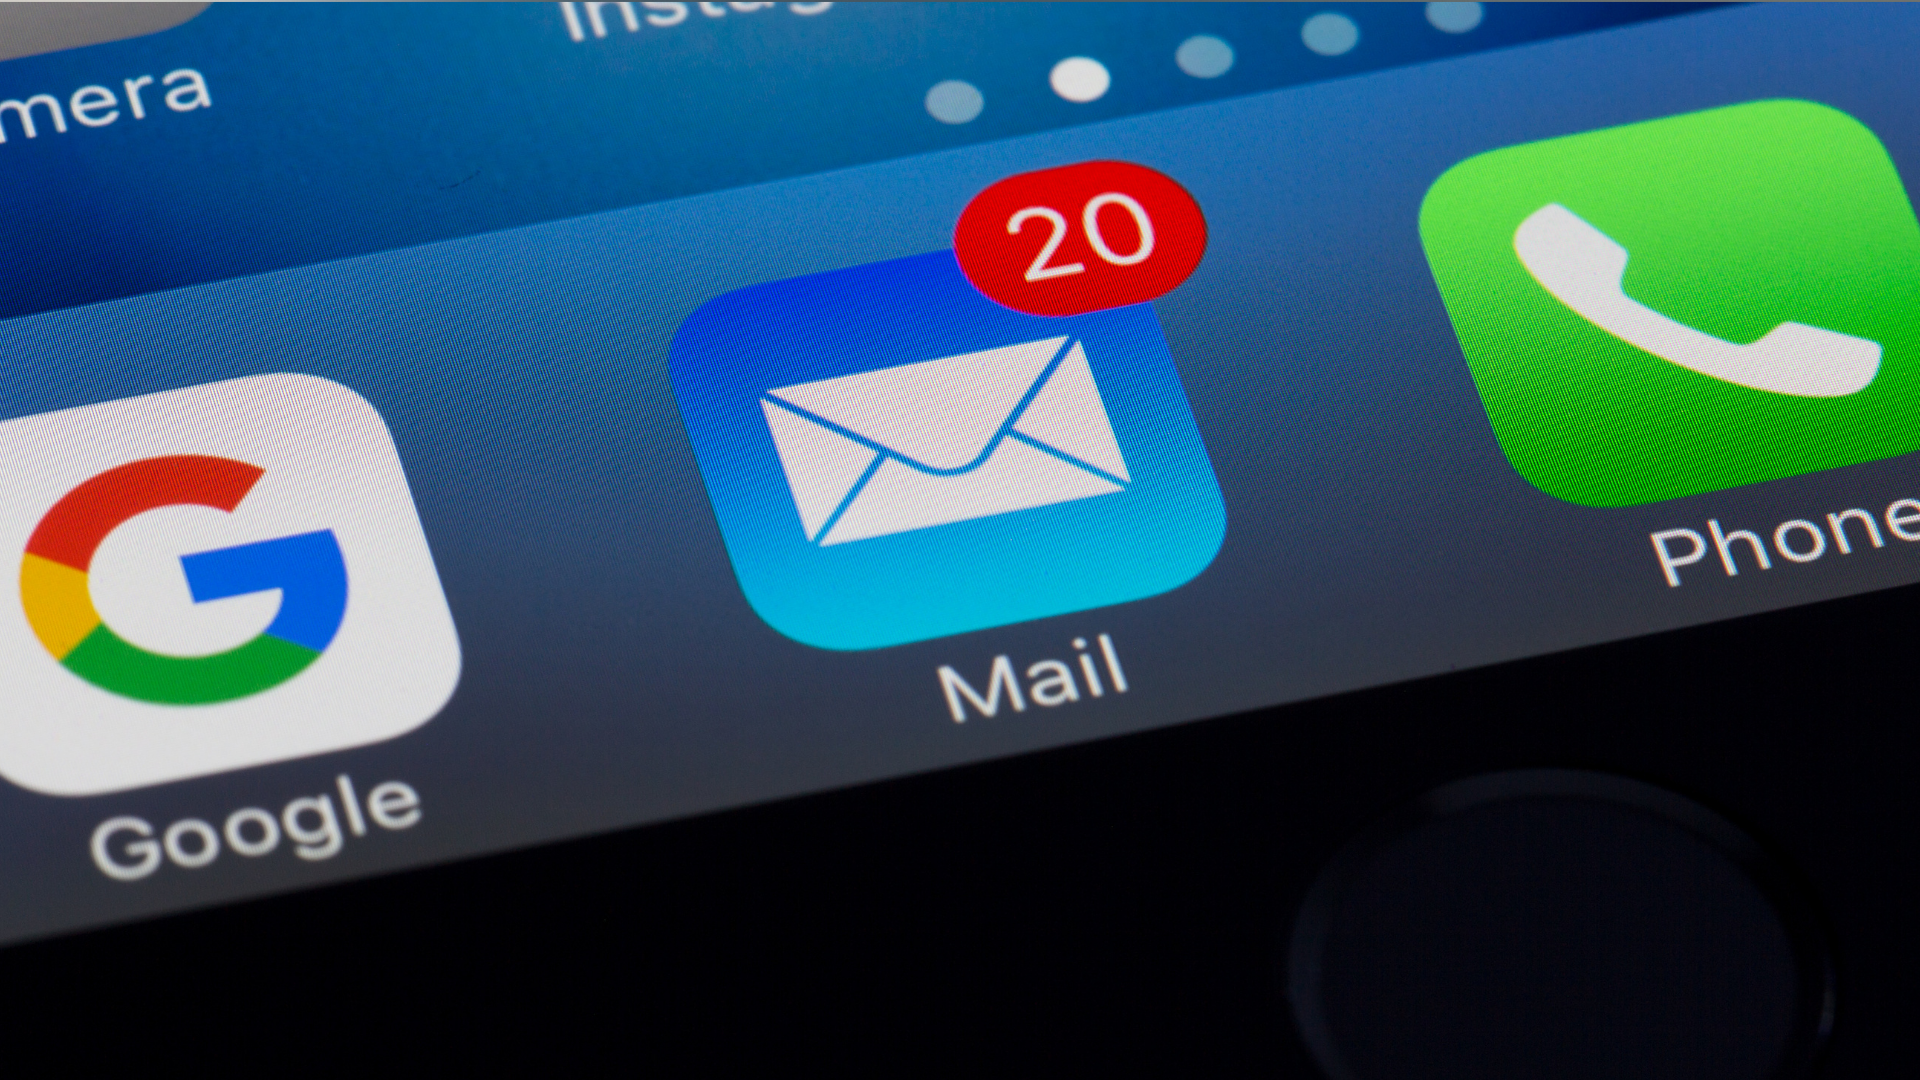 6 Best Affordable Email Marketing Services for Small Businesses